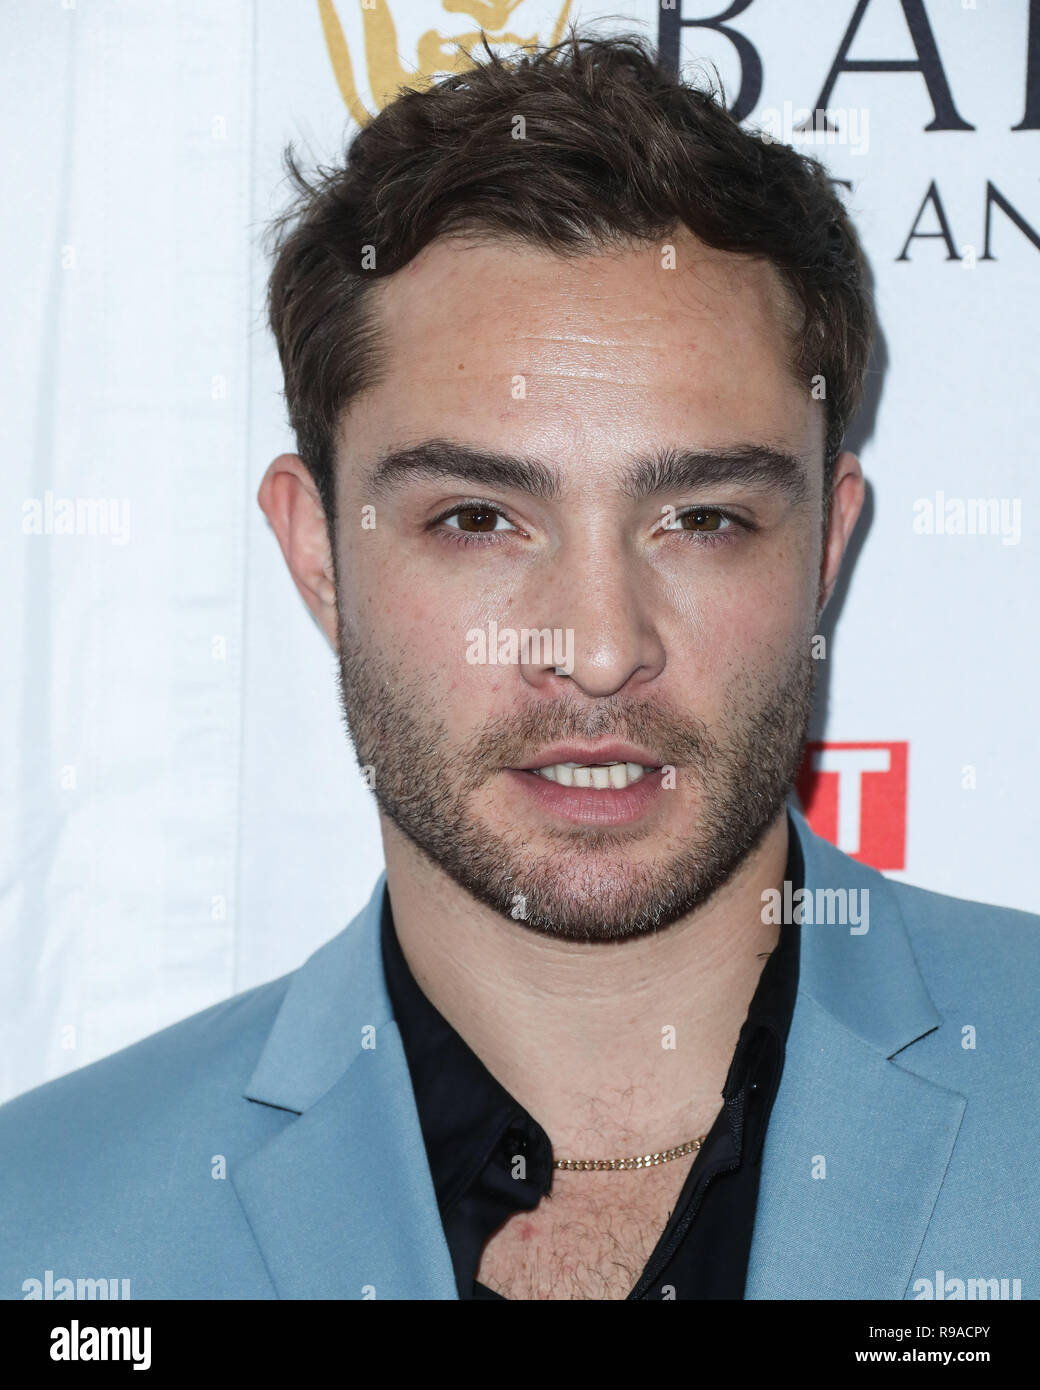 BEVERLY HILLS, LOS ANGELES, CA, USA - SEPTEMBER 16: Actor Ed Westwick  arrives at the BBC America BAFTA Los Angeles TV Tea Party 2017 held at the Beverly Hilton Hotel on September 16, 2017 in Beverly Hills, Los Angeles, California, United States. (Photo by Xavier Collin/Image Press Agency) - Stock Image